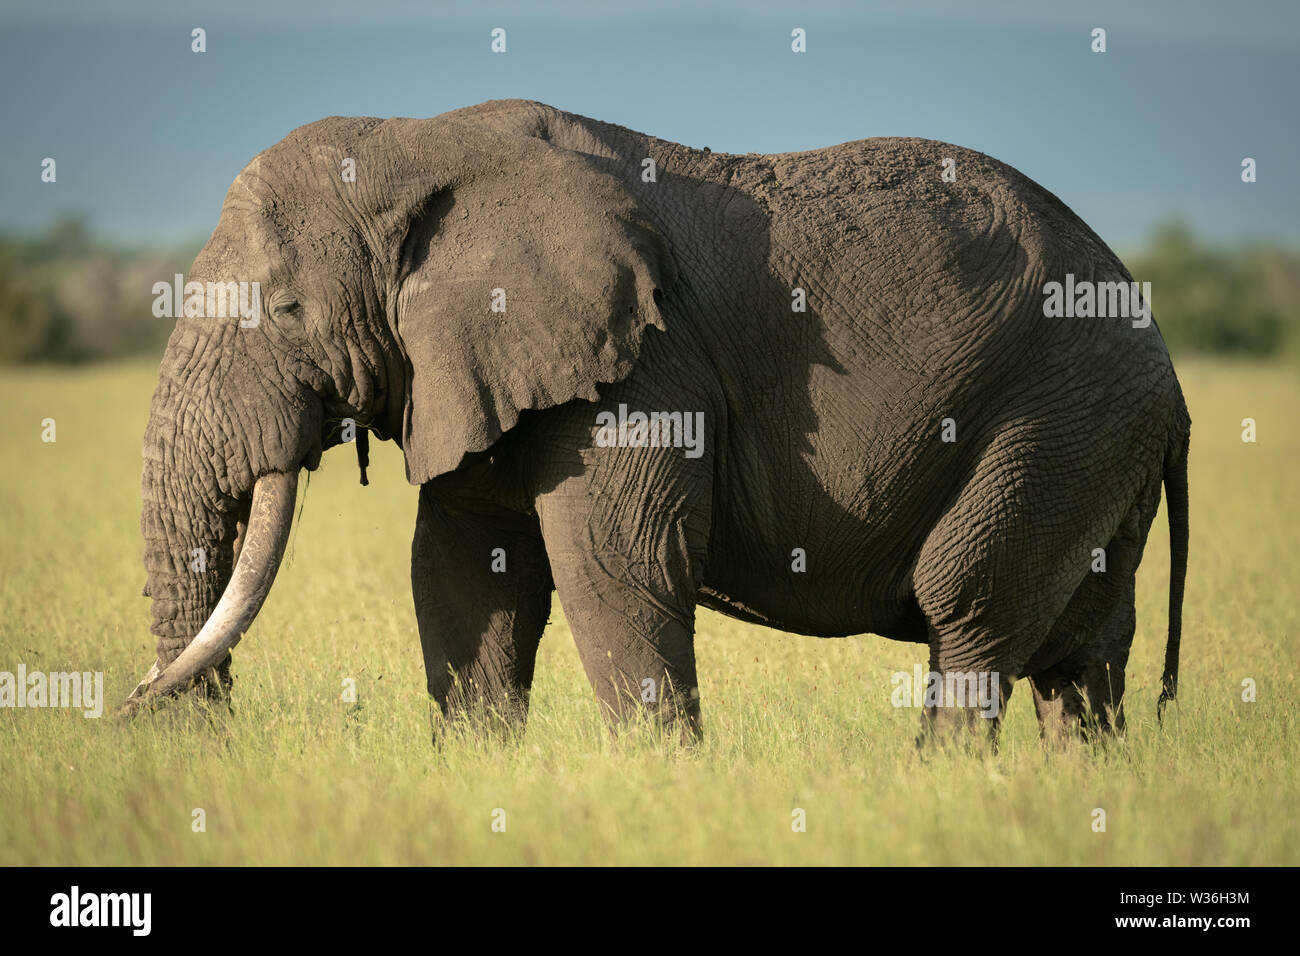 African bush elephant standing in long grass - Stock Image